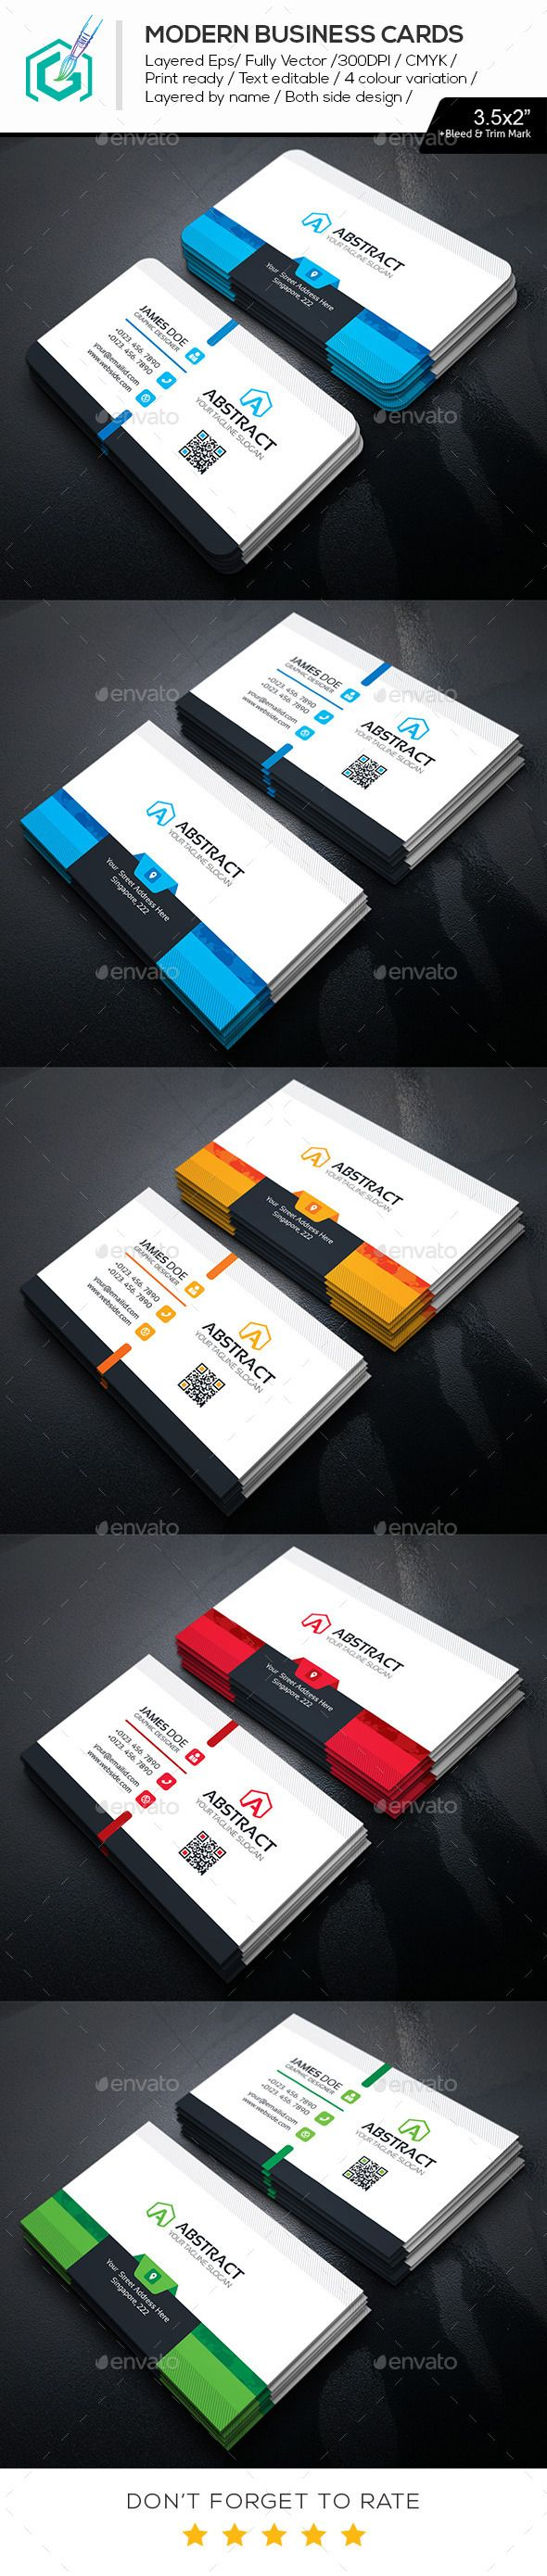 Modern Business Cards Template #design Download: http://graphicriver.net/item/modern-business-cards/11469211?ref=ksioks